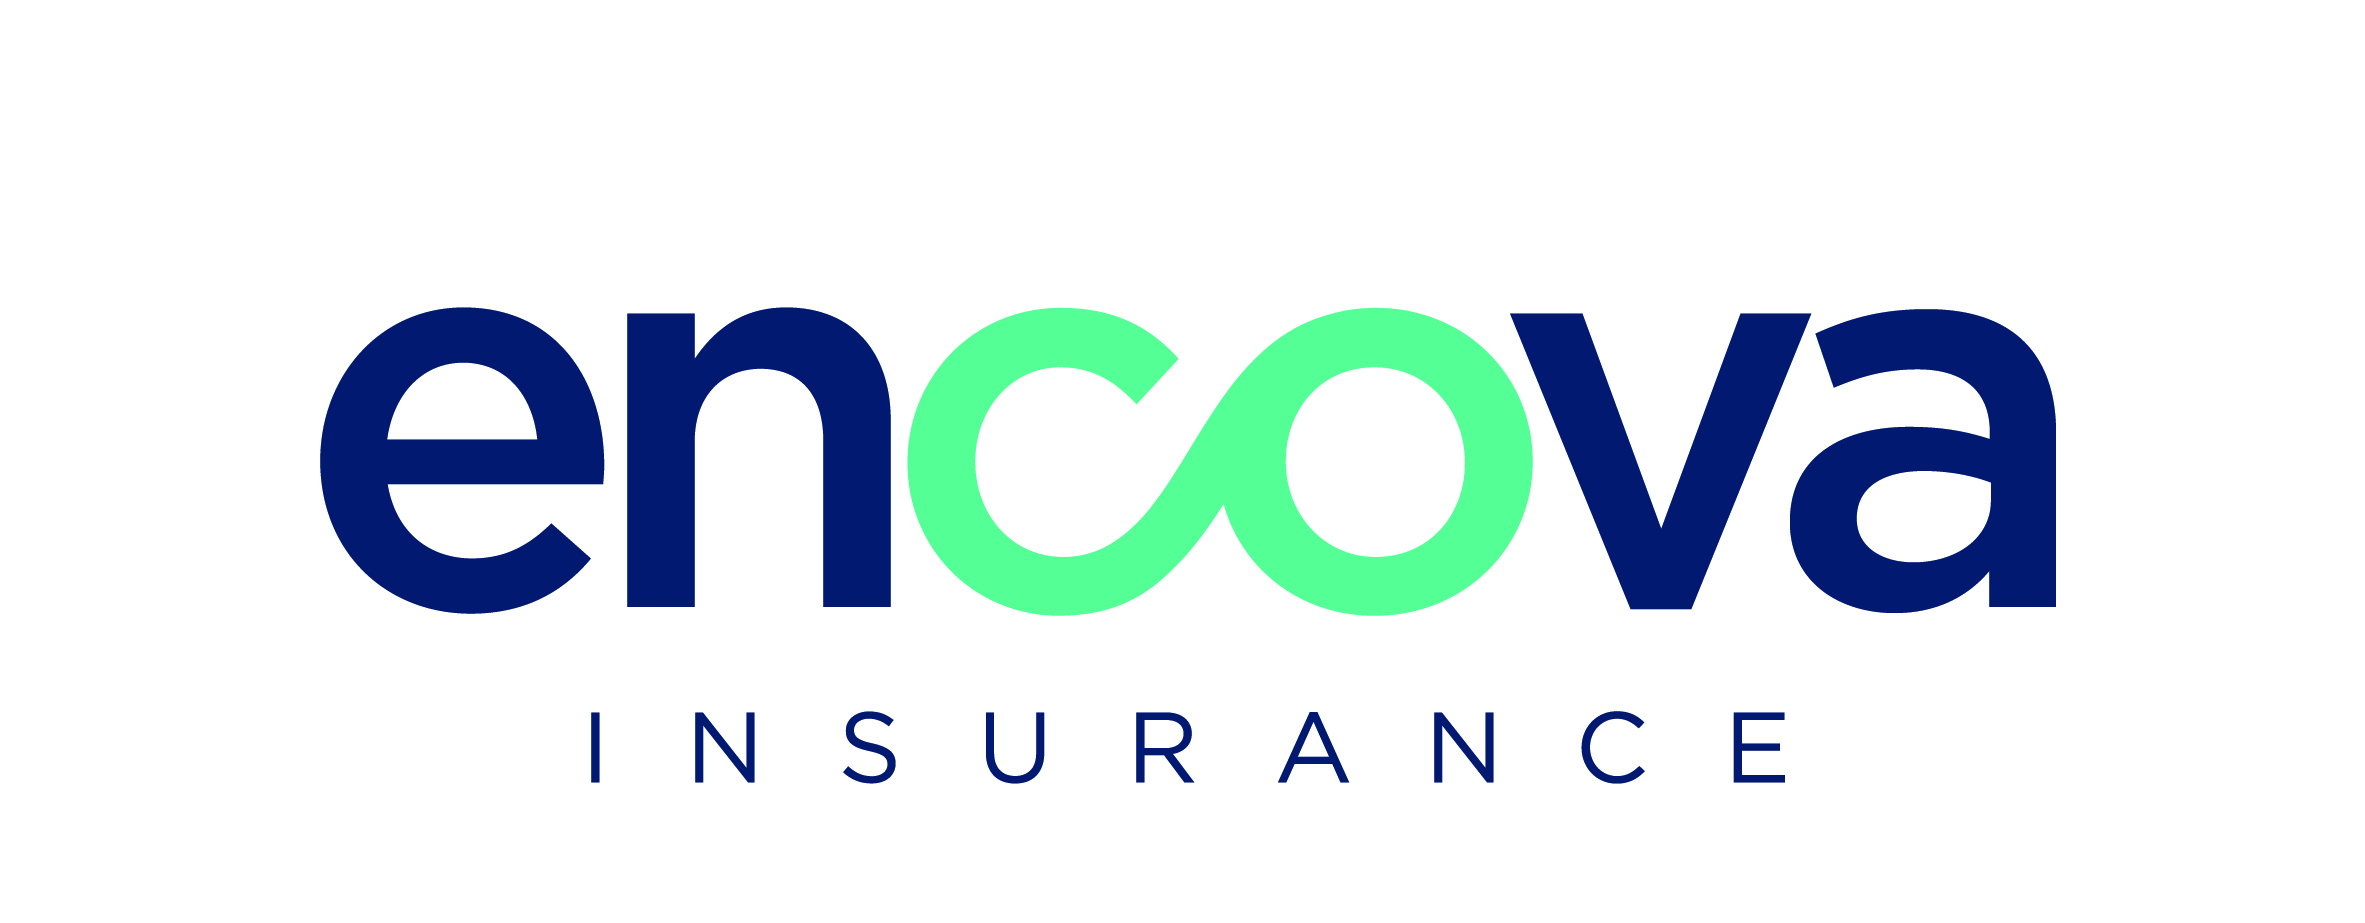 encova-logo-CMYK-color.jpg